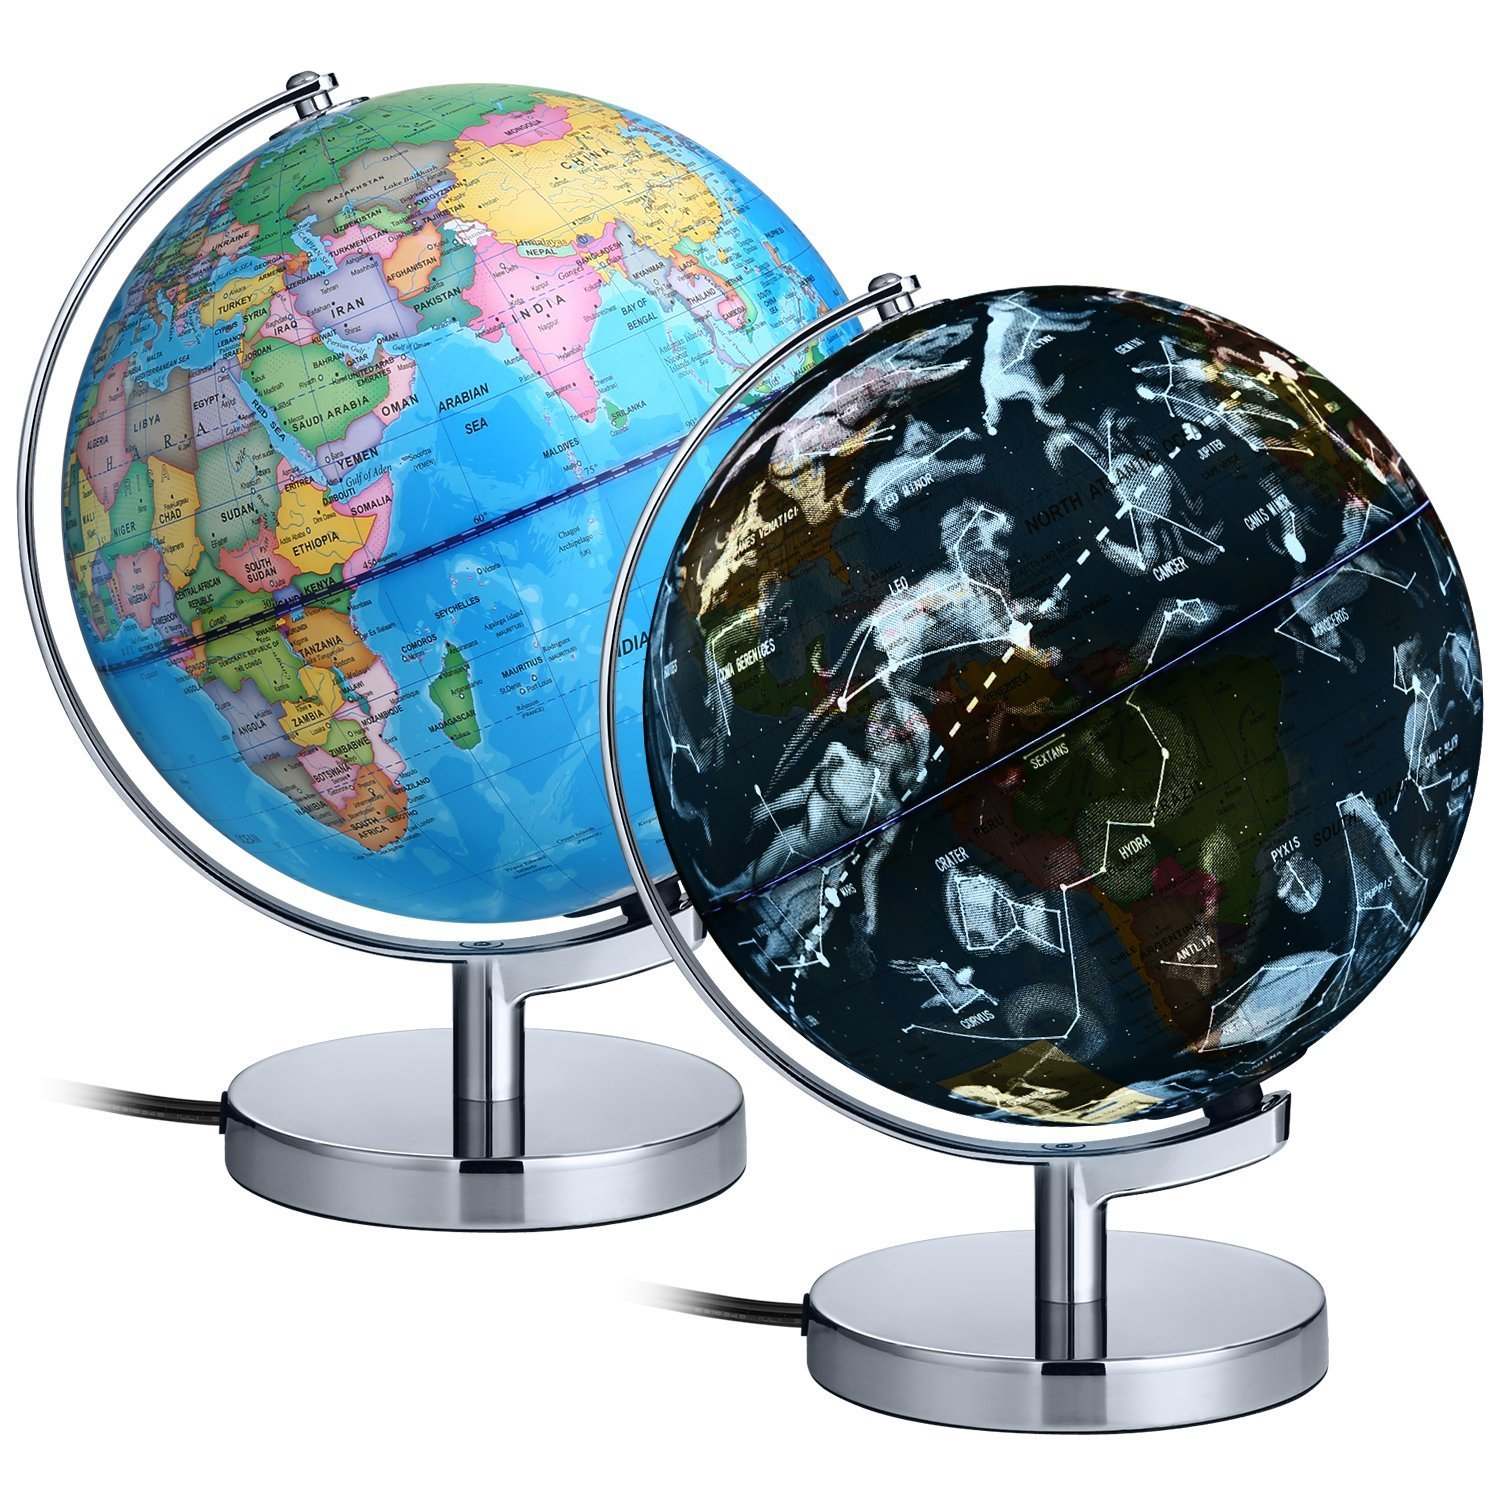 AuAg 9'' Illuminated World Globe for Kids, 88 Constellations & Animals Globe,Built in LED Lights for Night Views with Plug,Enviroment Friendly Marierials, 2-in-1 Educational Detailed World Globe Map